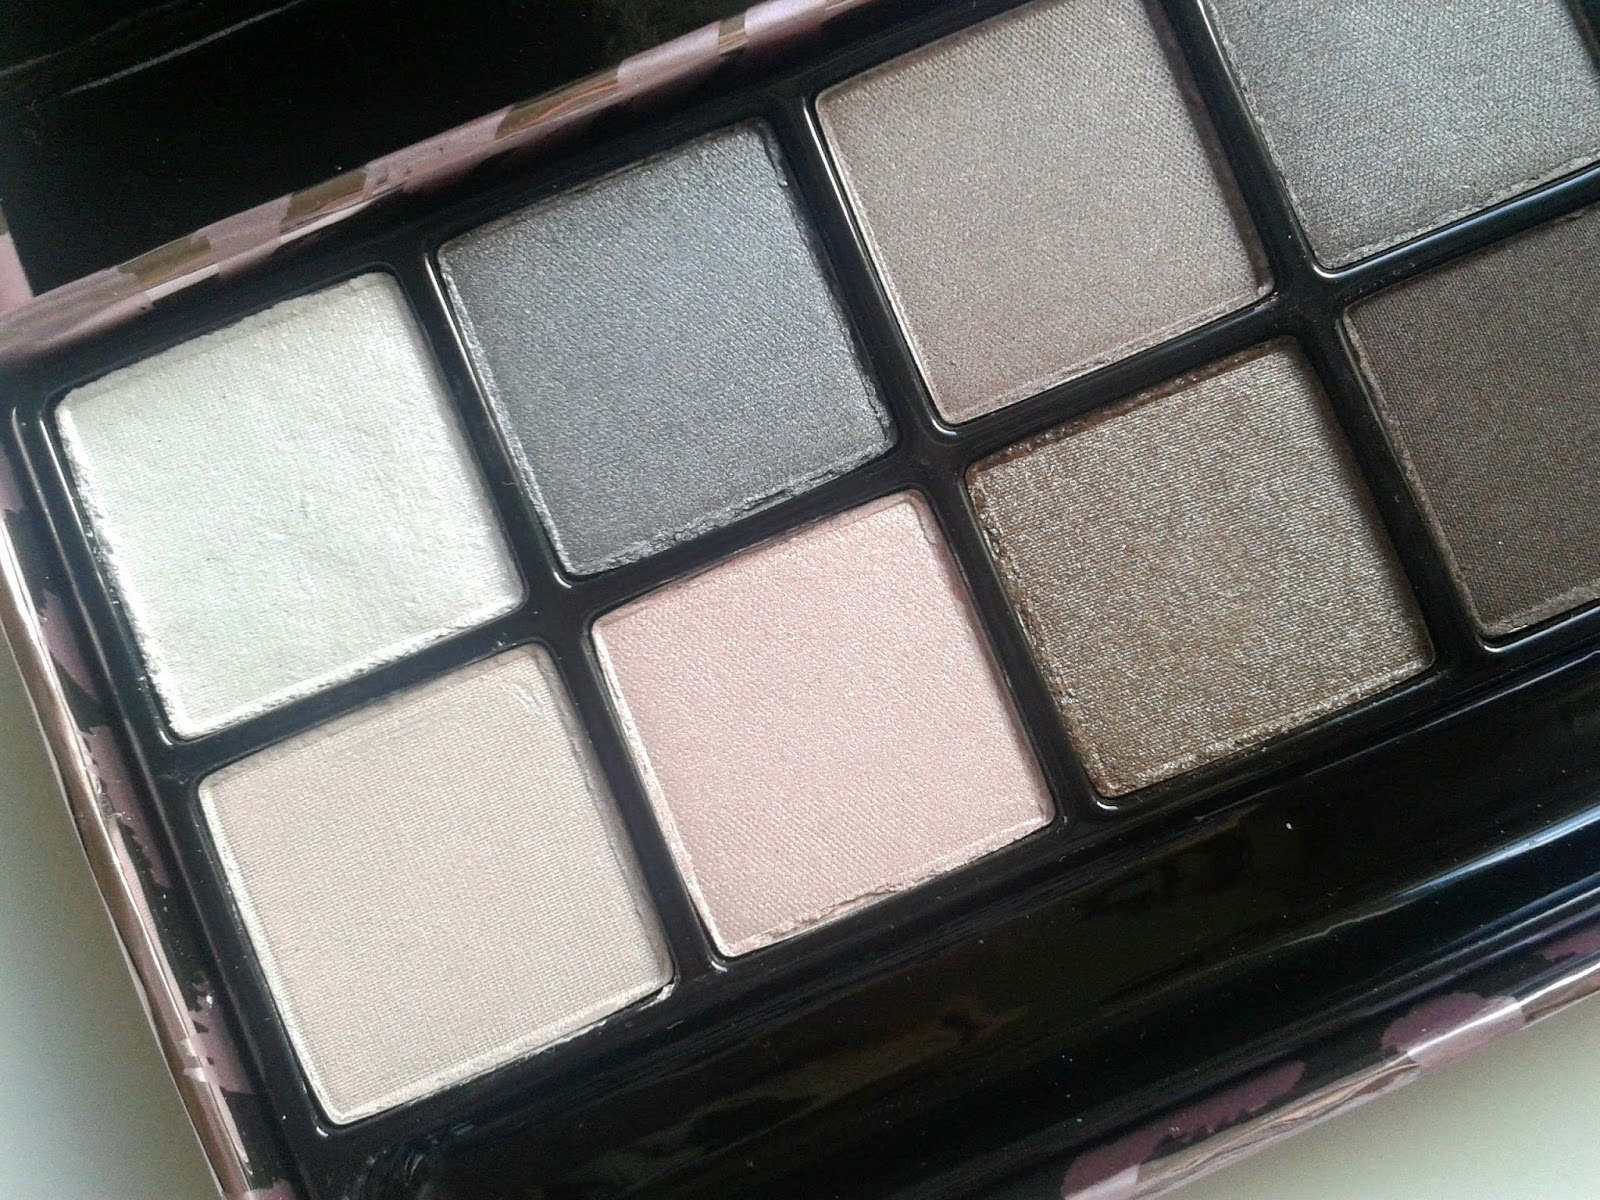 Victoria's Secret Smoky Exotics Eye Palette Beauty Review Eyeshadow